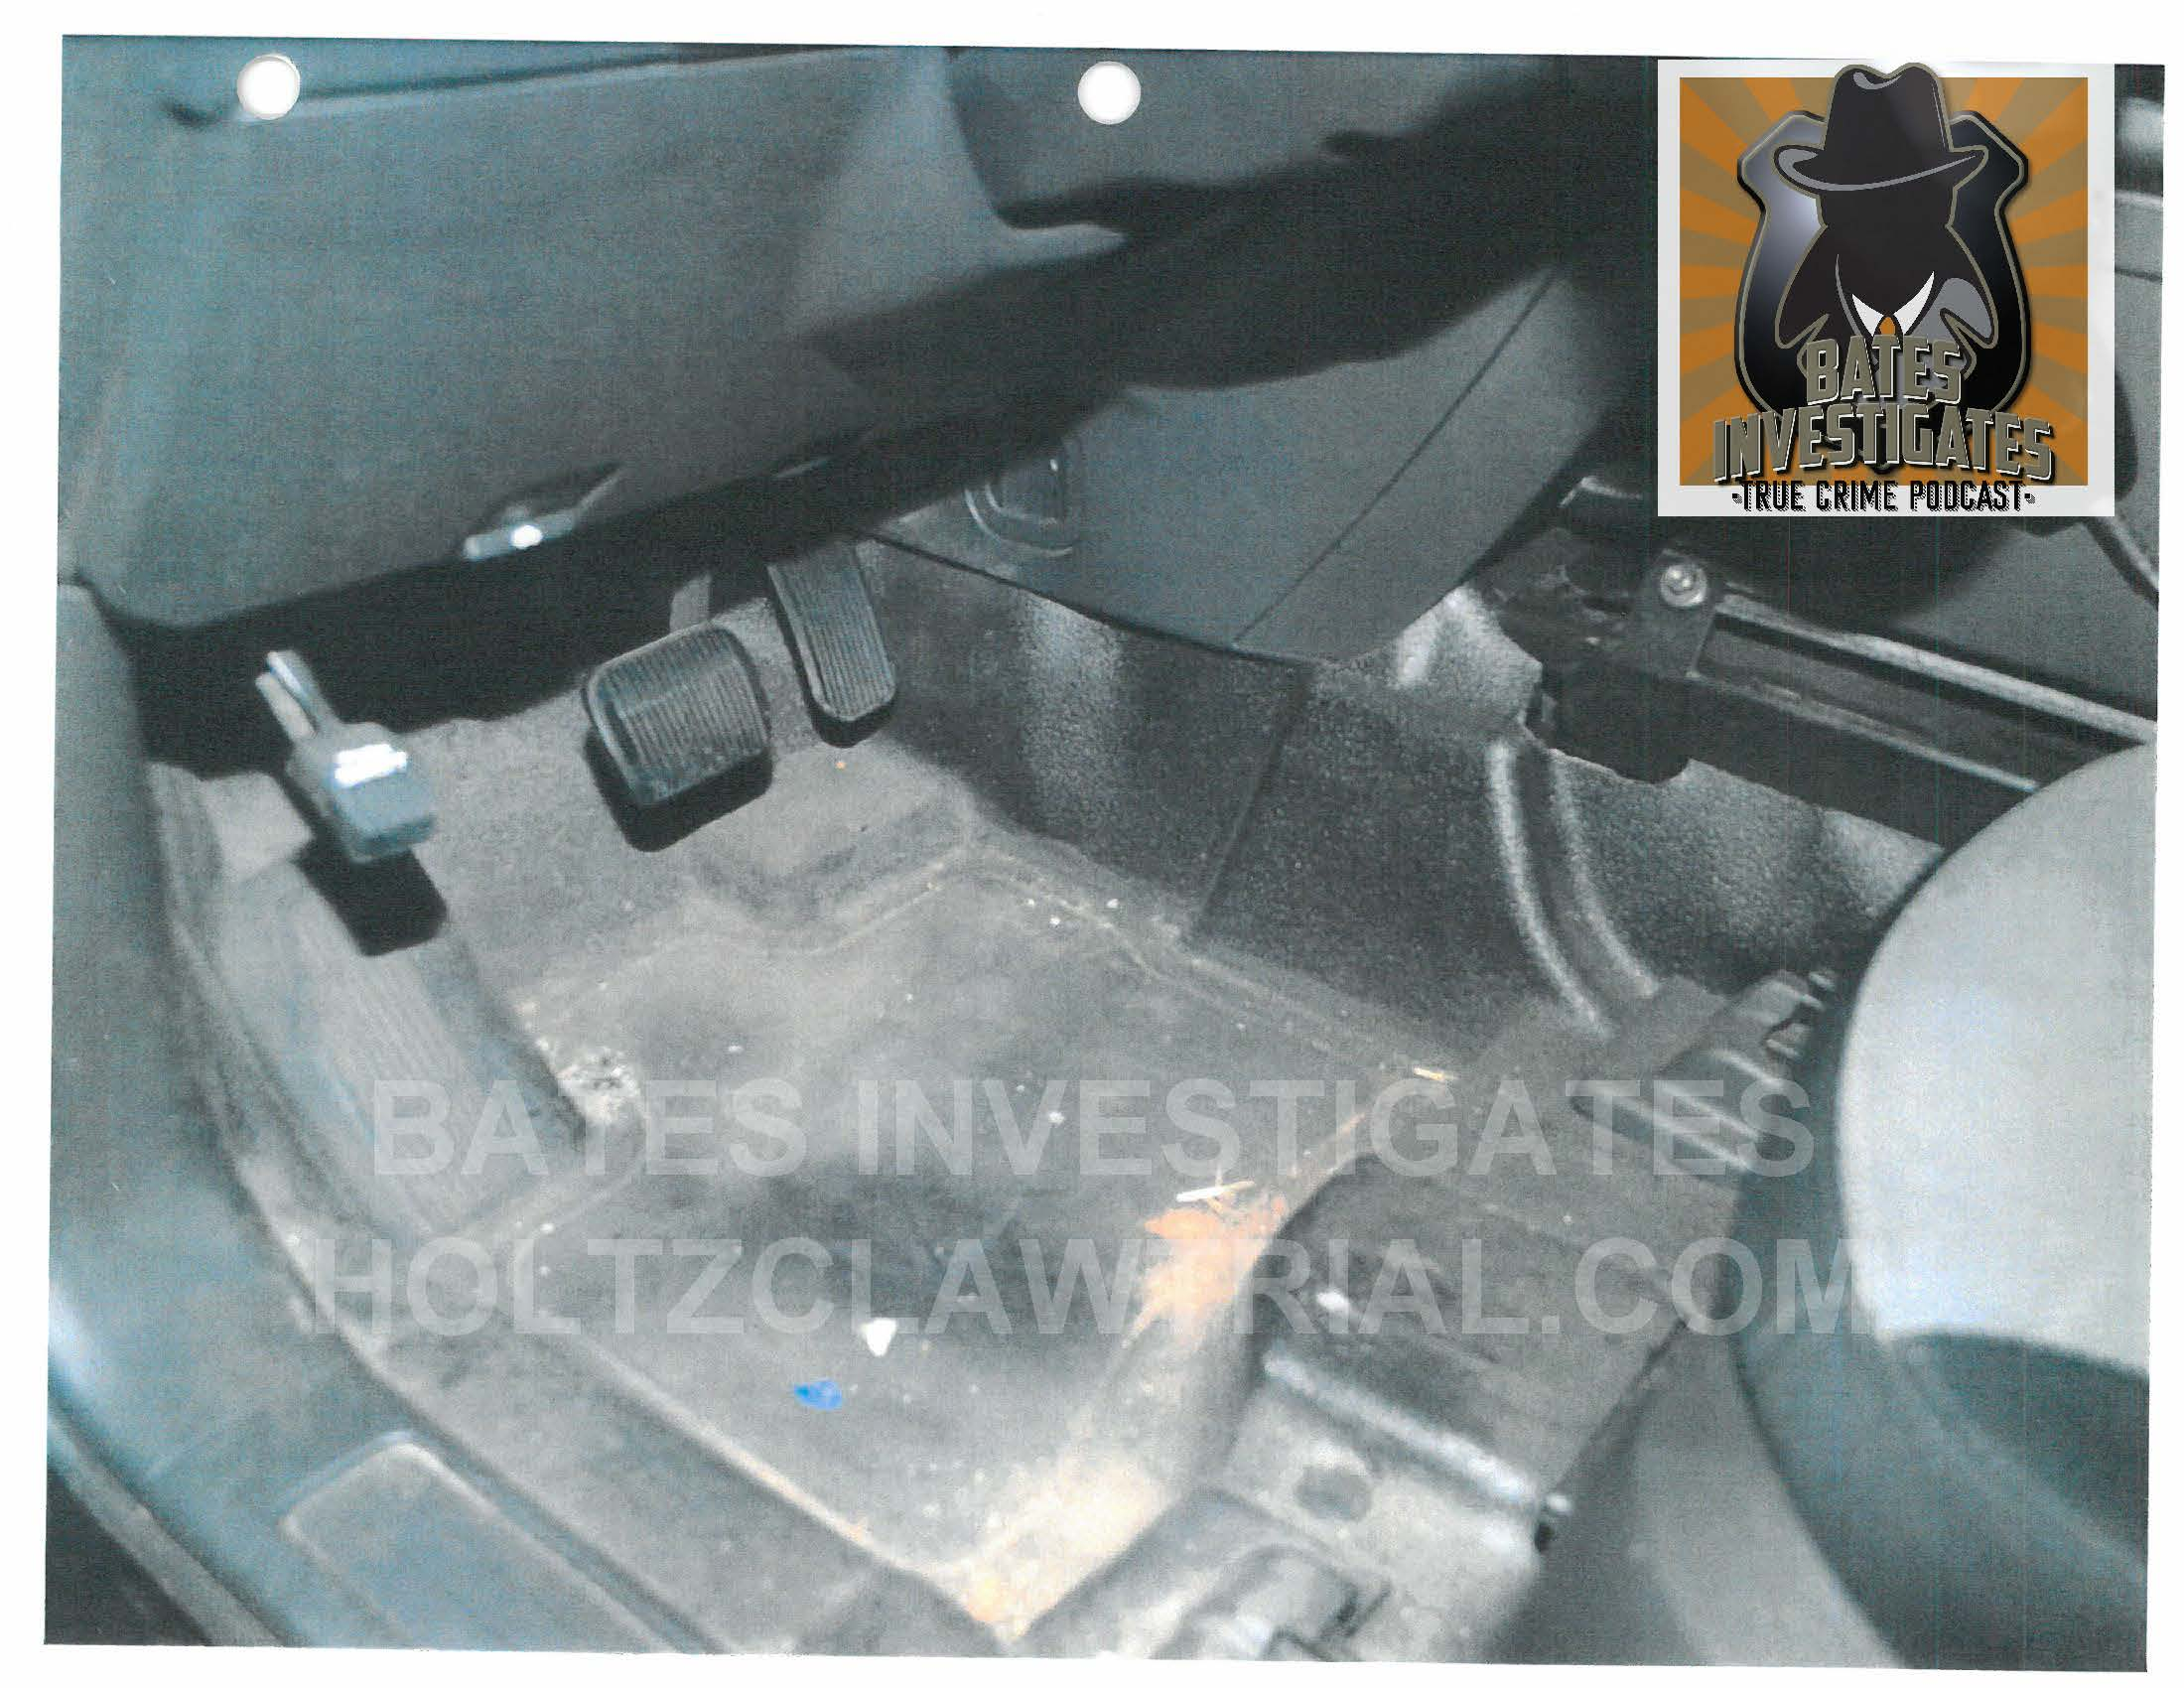 Holtzclaw Daniel - OCPD Patrol Car Photos Watermarked_Page_38.jpg